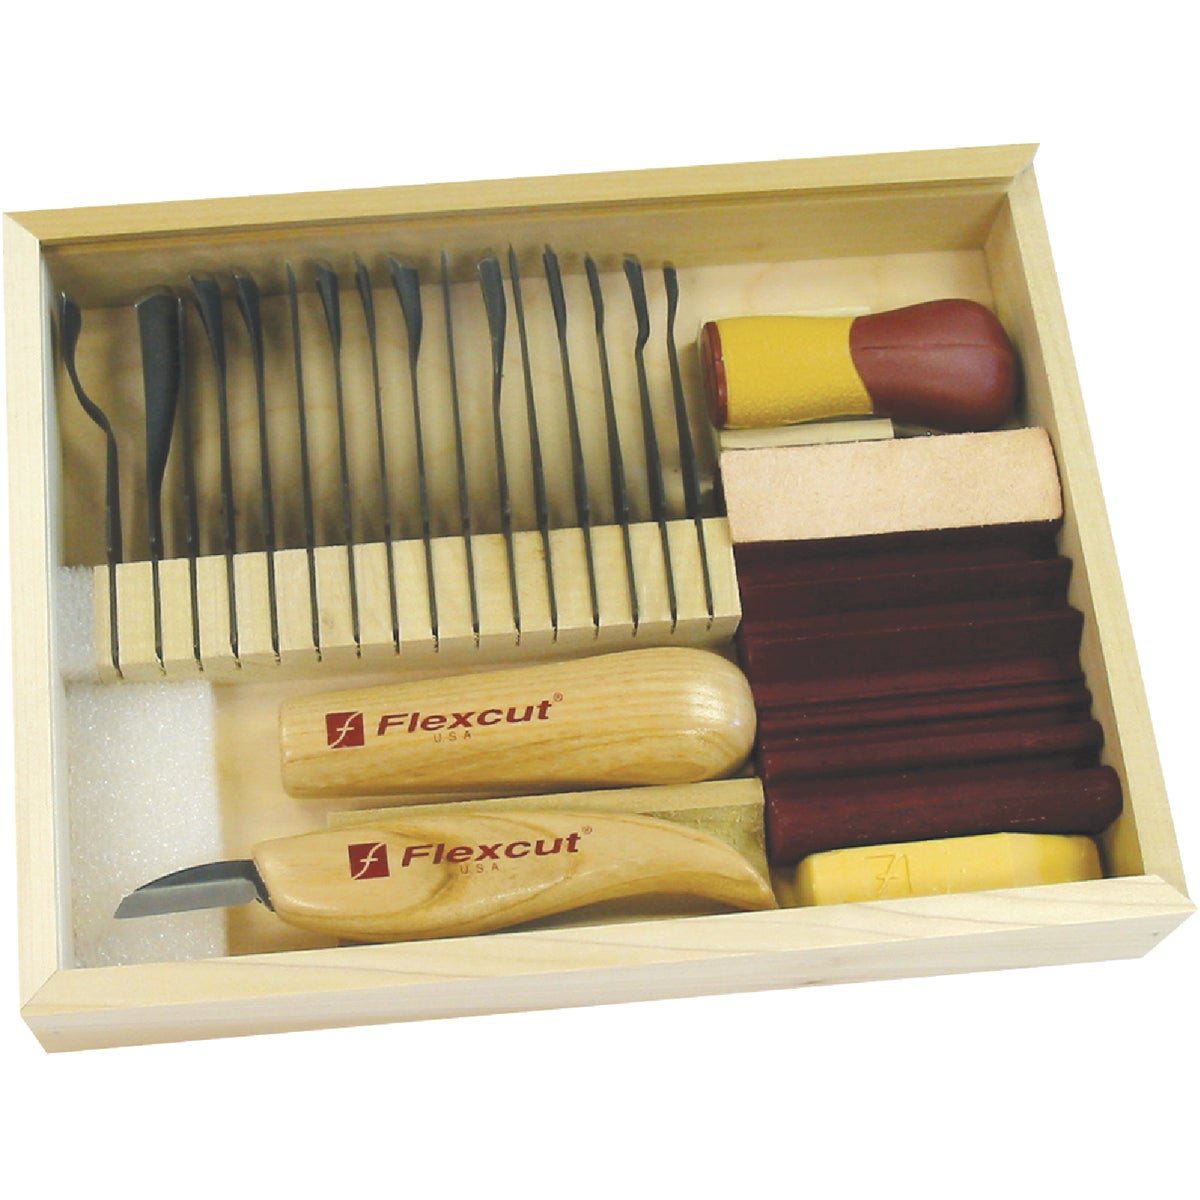 DLX STARTER CARVING SET